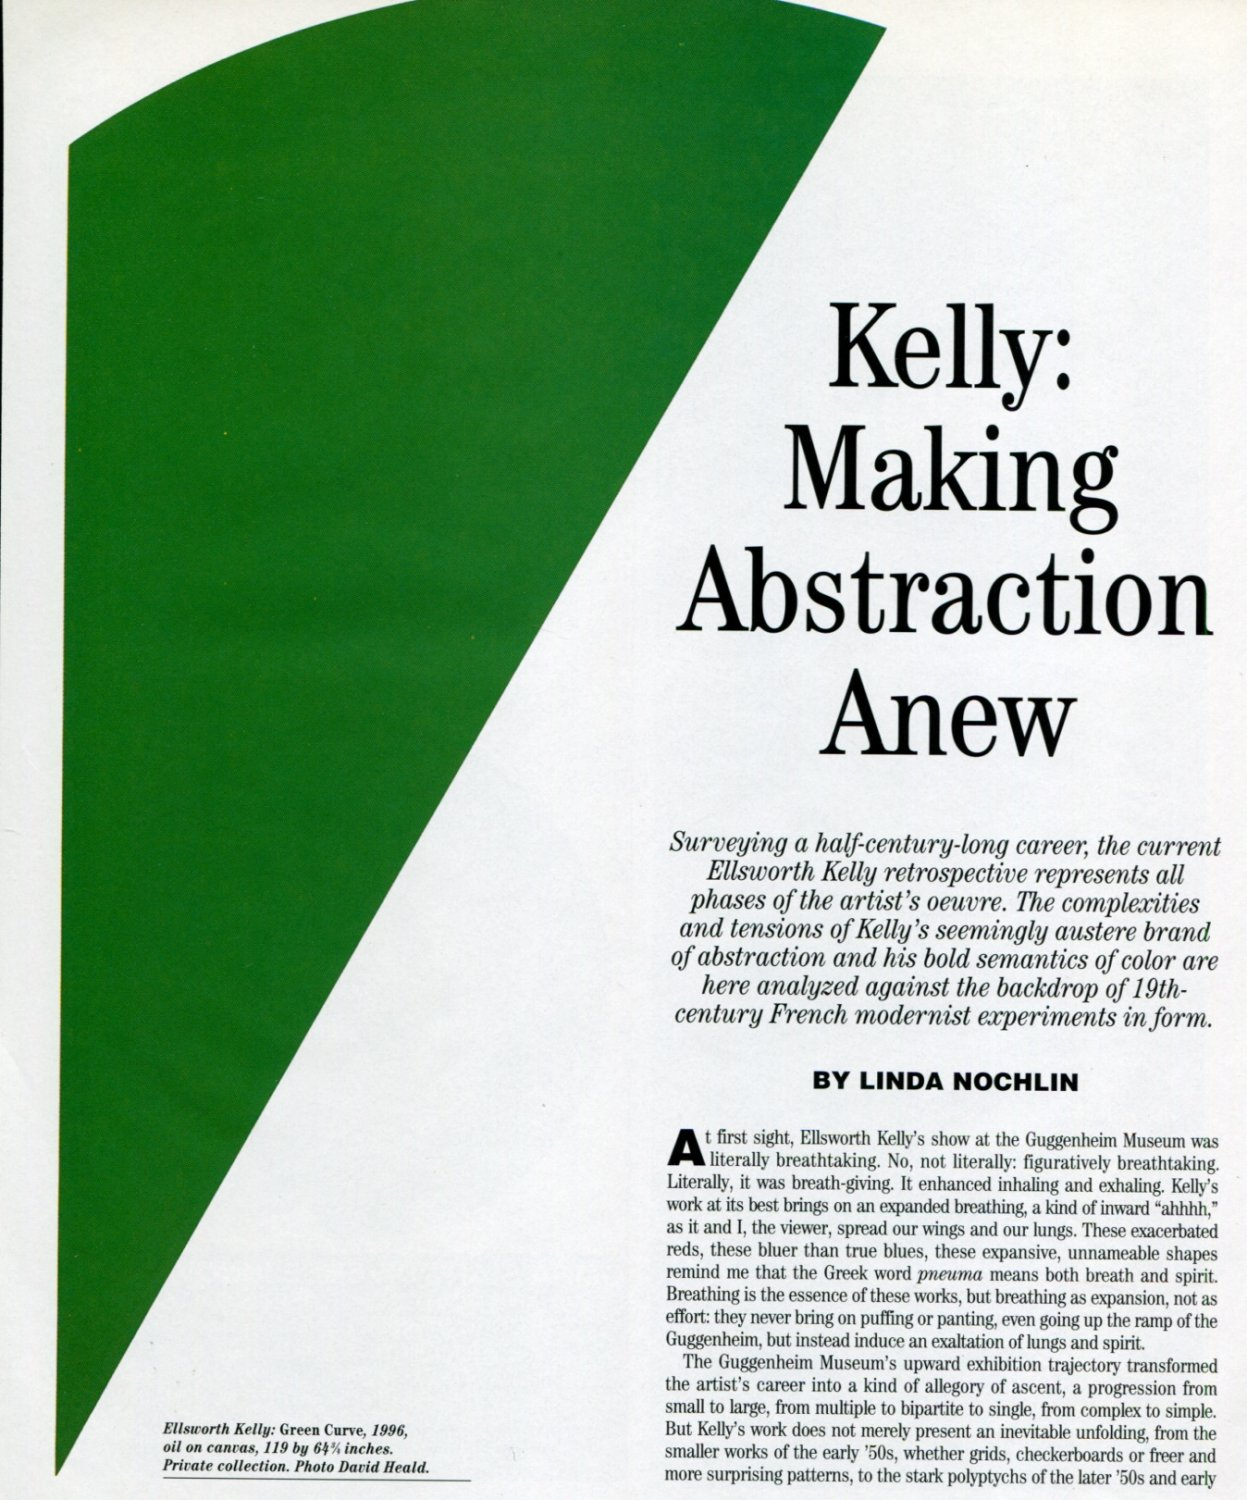 Ellsworth Kelly Making Abstraction Anew 1997 Magazine Article